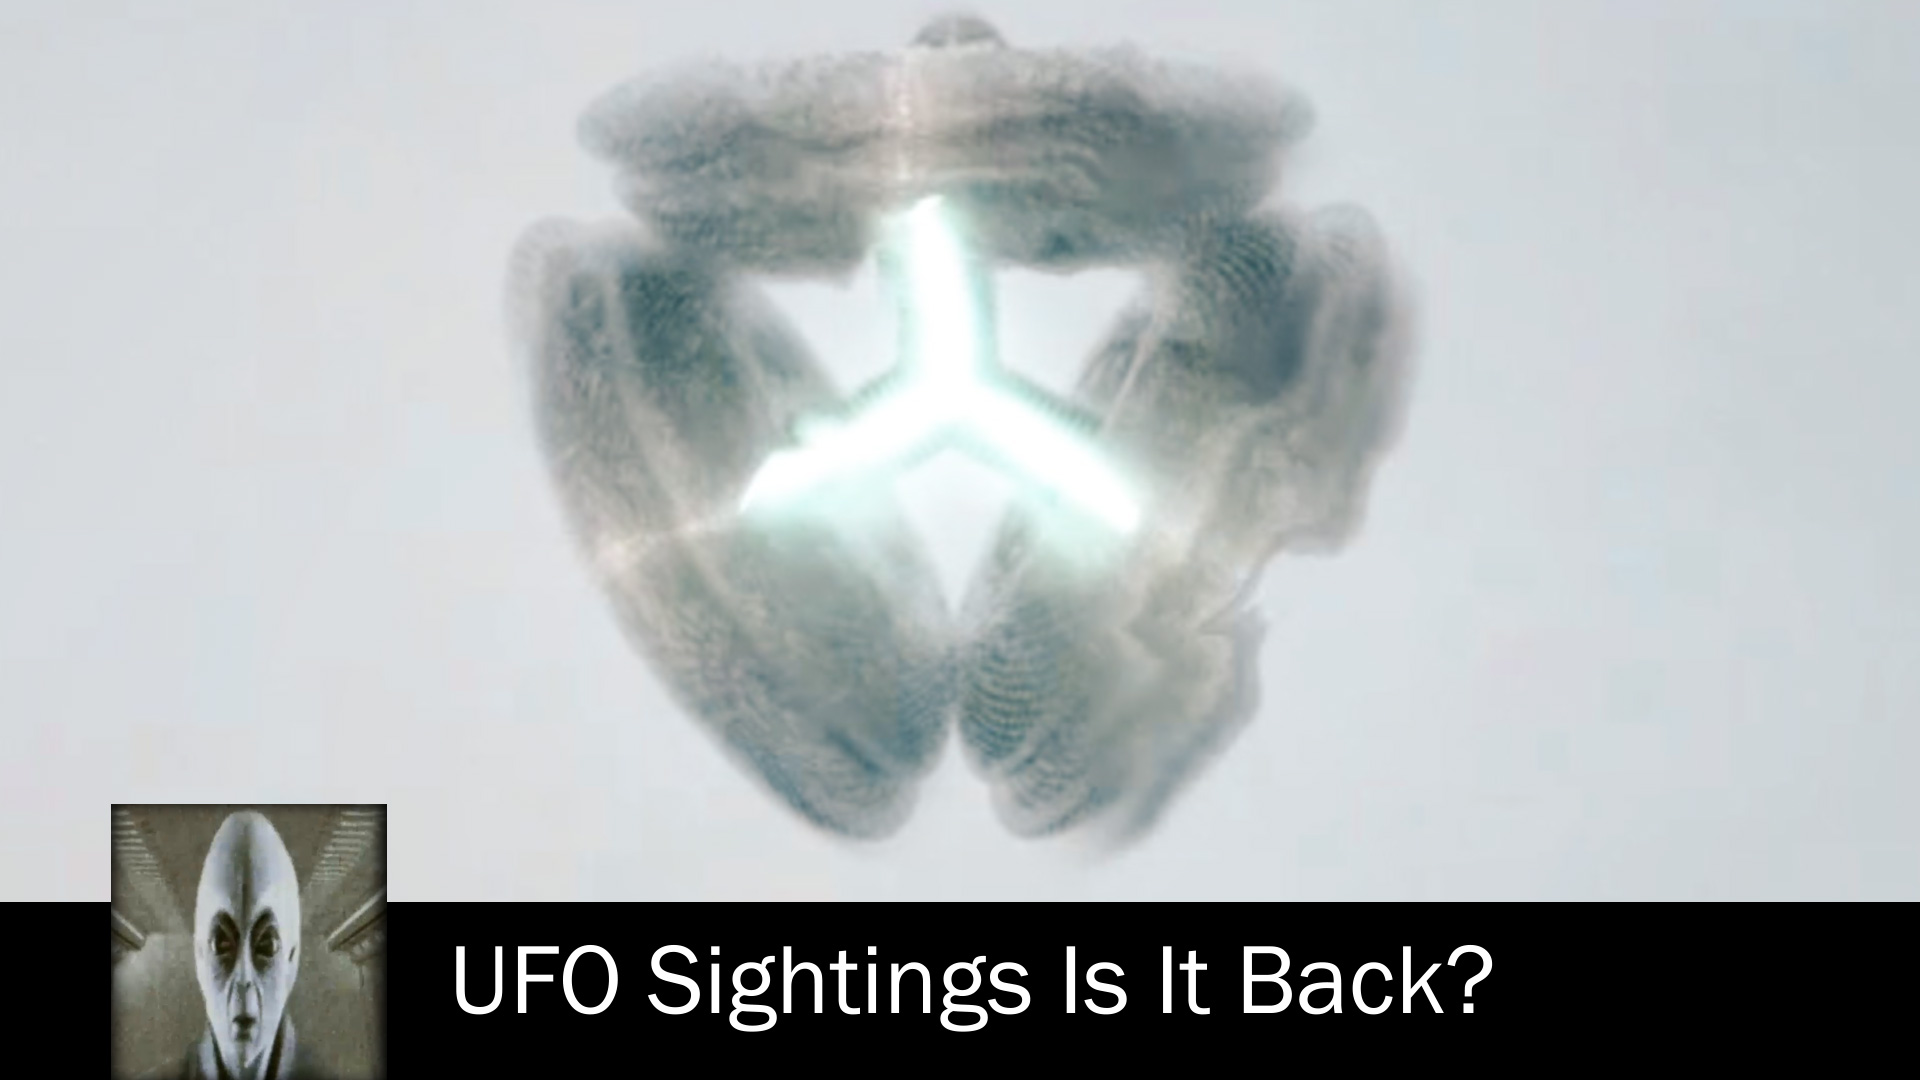 UFO Sightings Is It Back June 16th 2017